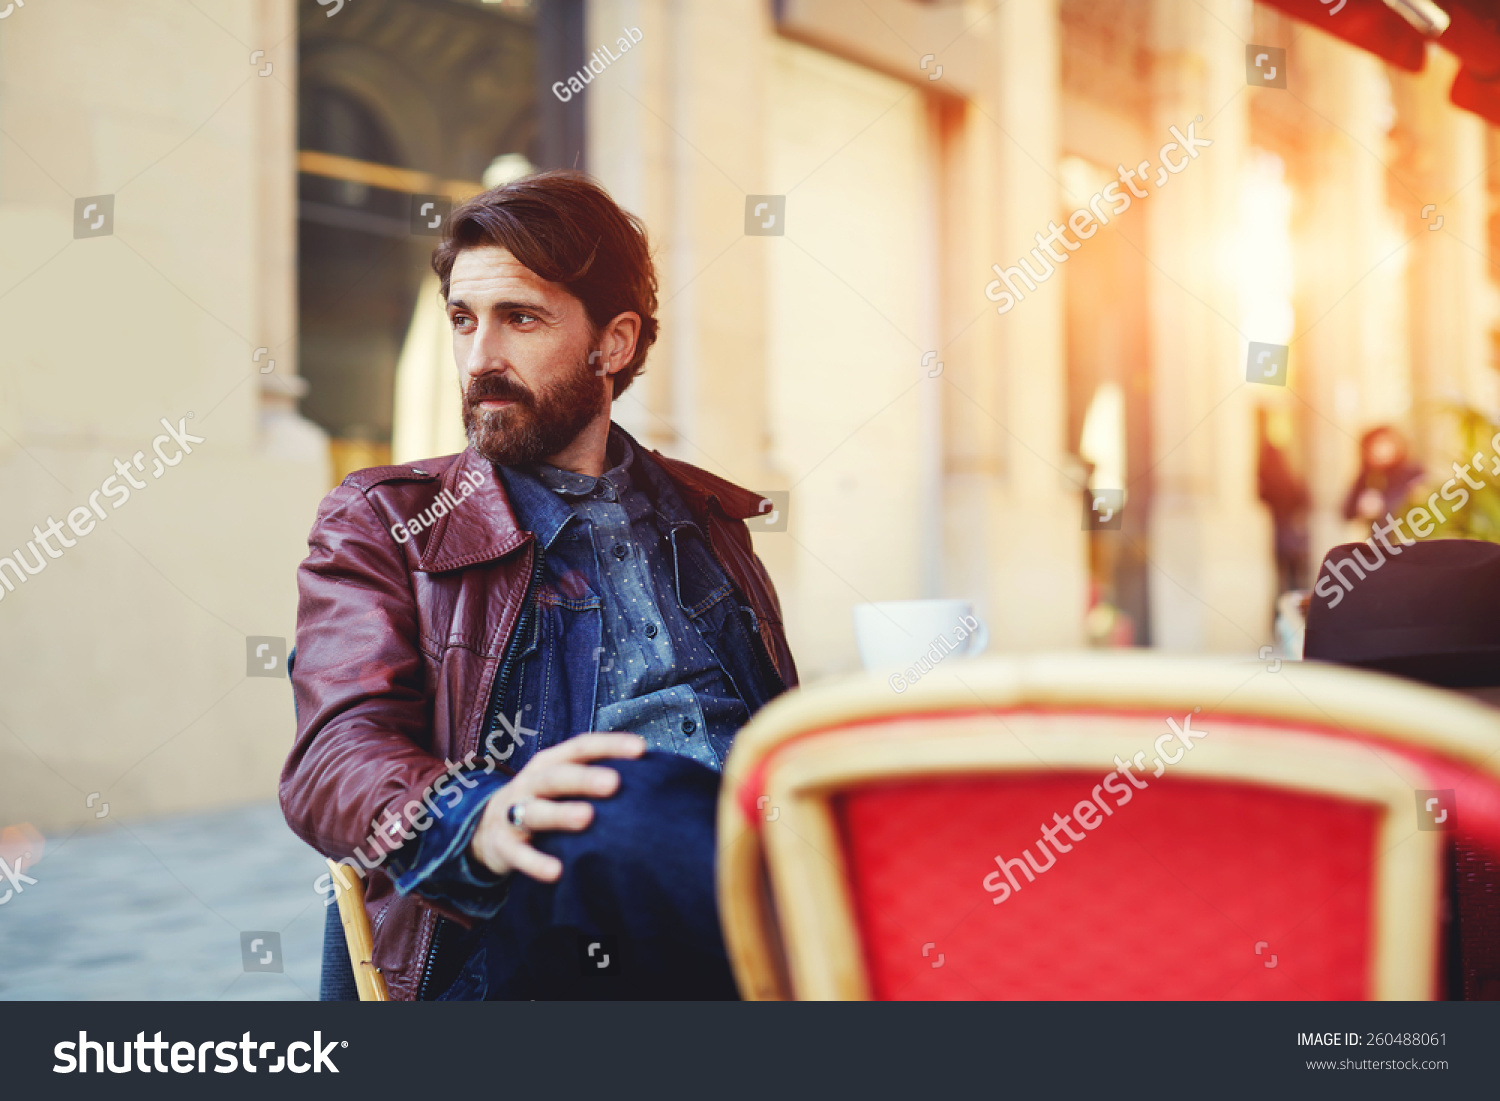 Portrait of handsome and stylish man with beard enjoying a cup of coffee in a coffee shop adult fashionable hipster having coffee in beautiful cafe terrace at sunny day flare sun light